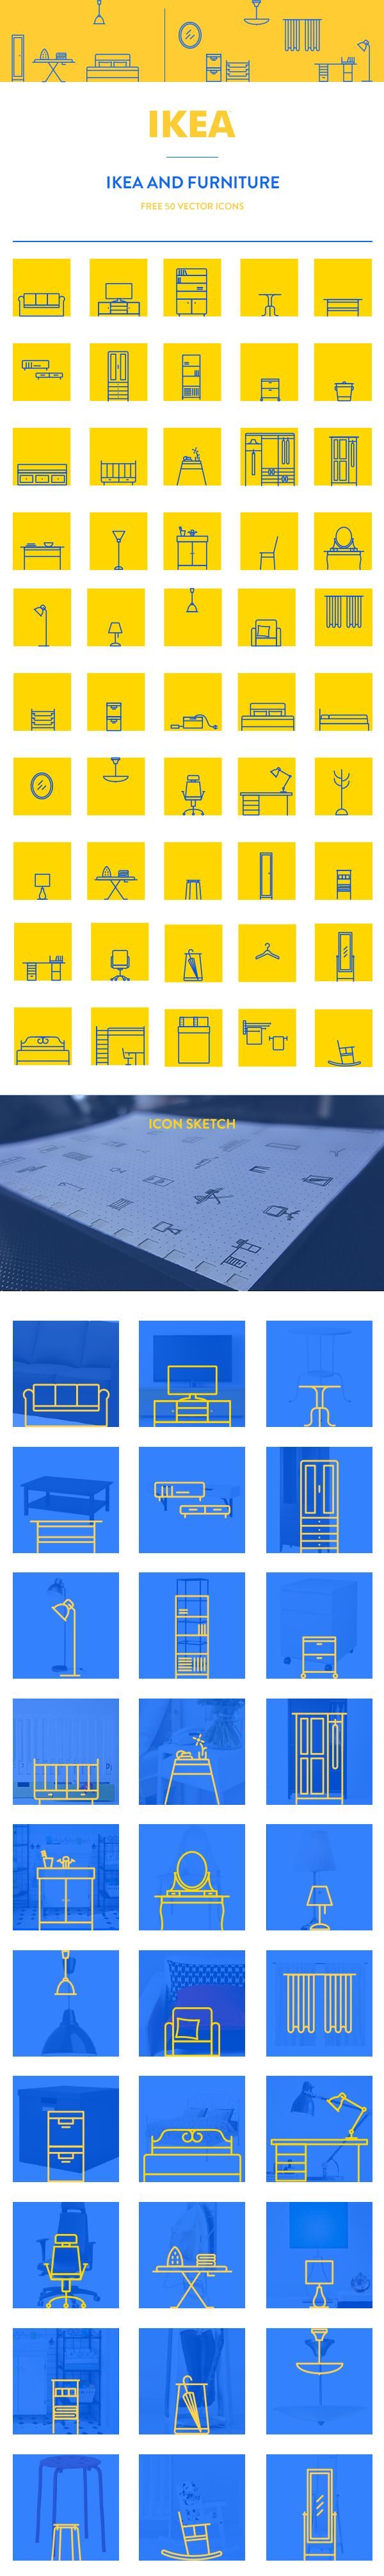 https://www.behance.net/gallery/23325933/IKEA-furniture-icon